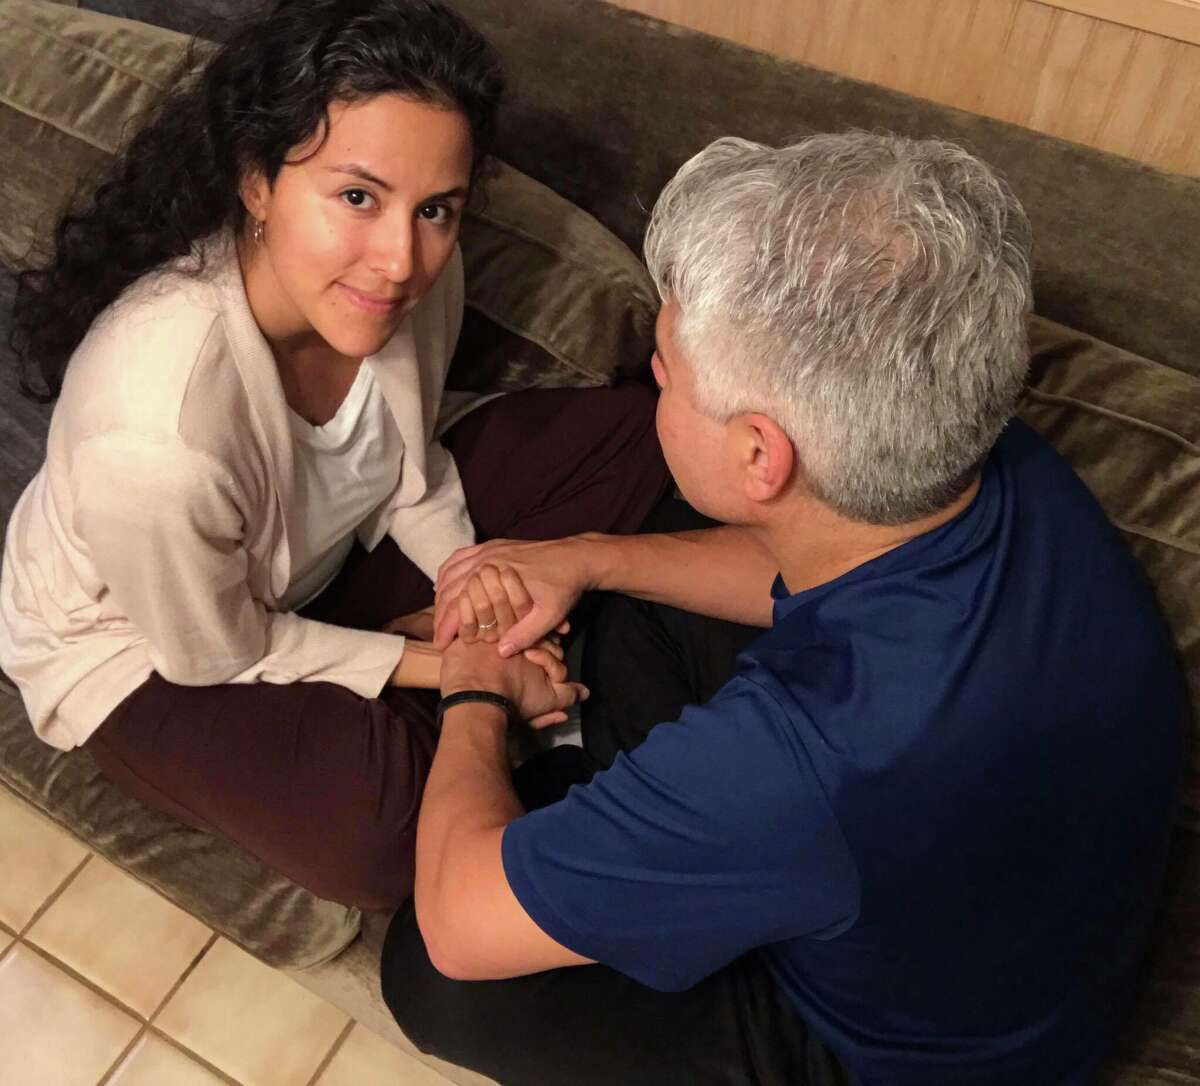 Janet Trevino, 37, provides non-sexual cuddling sessions for people in San Antonio and the surrounding areas through Cuddlist.com.